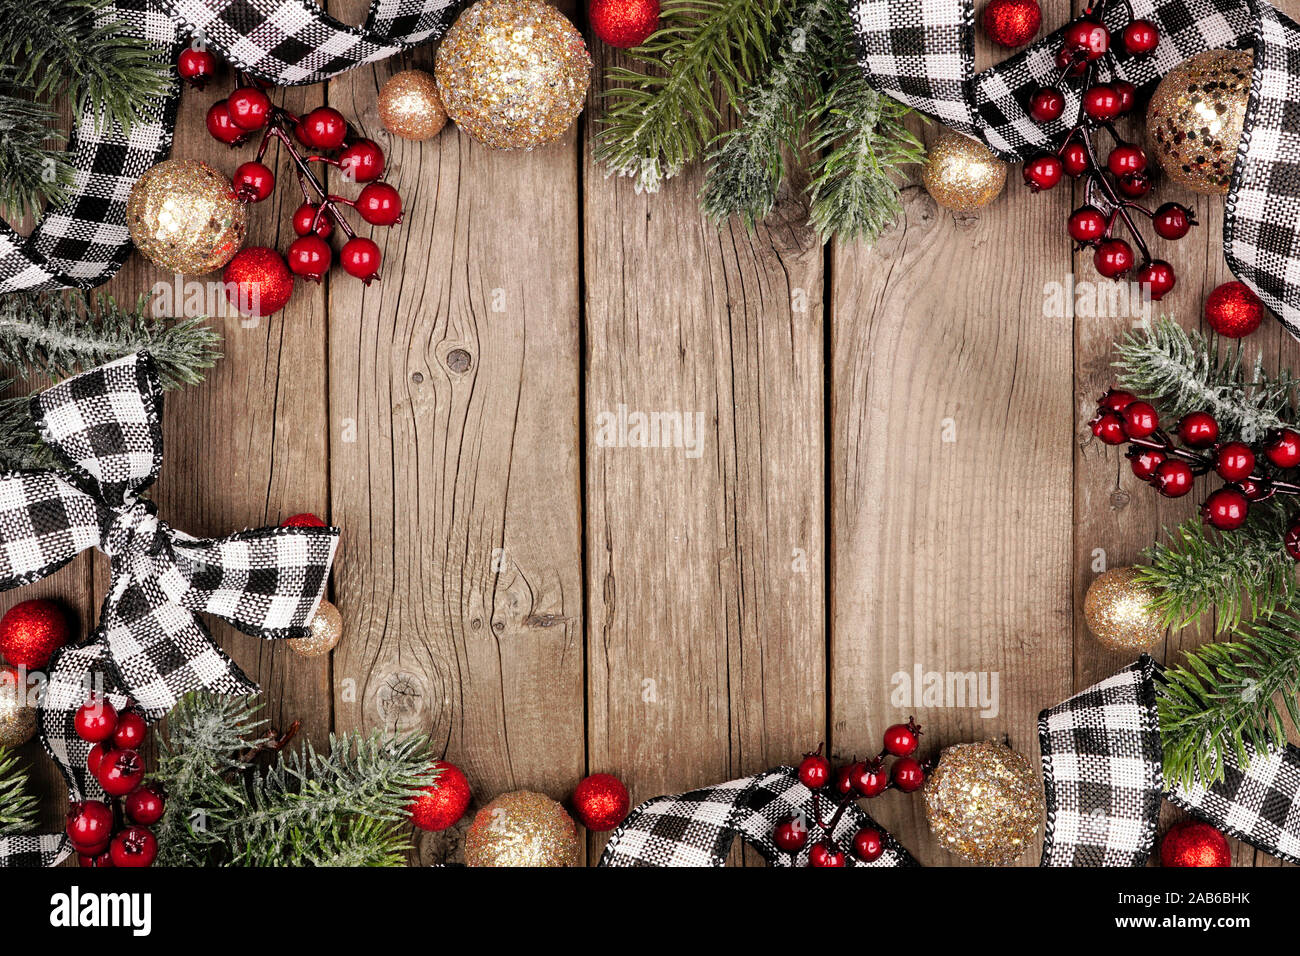 Christmas Frame With White And Black Checked Buffalo Plaid Ribbon Baubles And Tree Branches Top View On A Rustic Wood Background Stock Photo Alamy